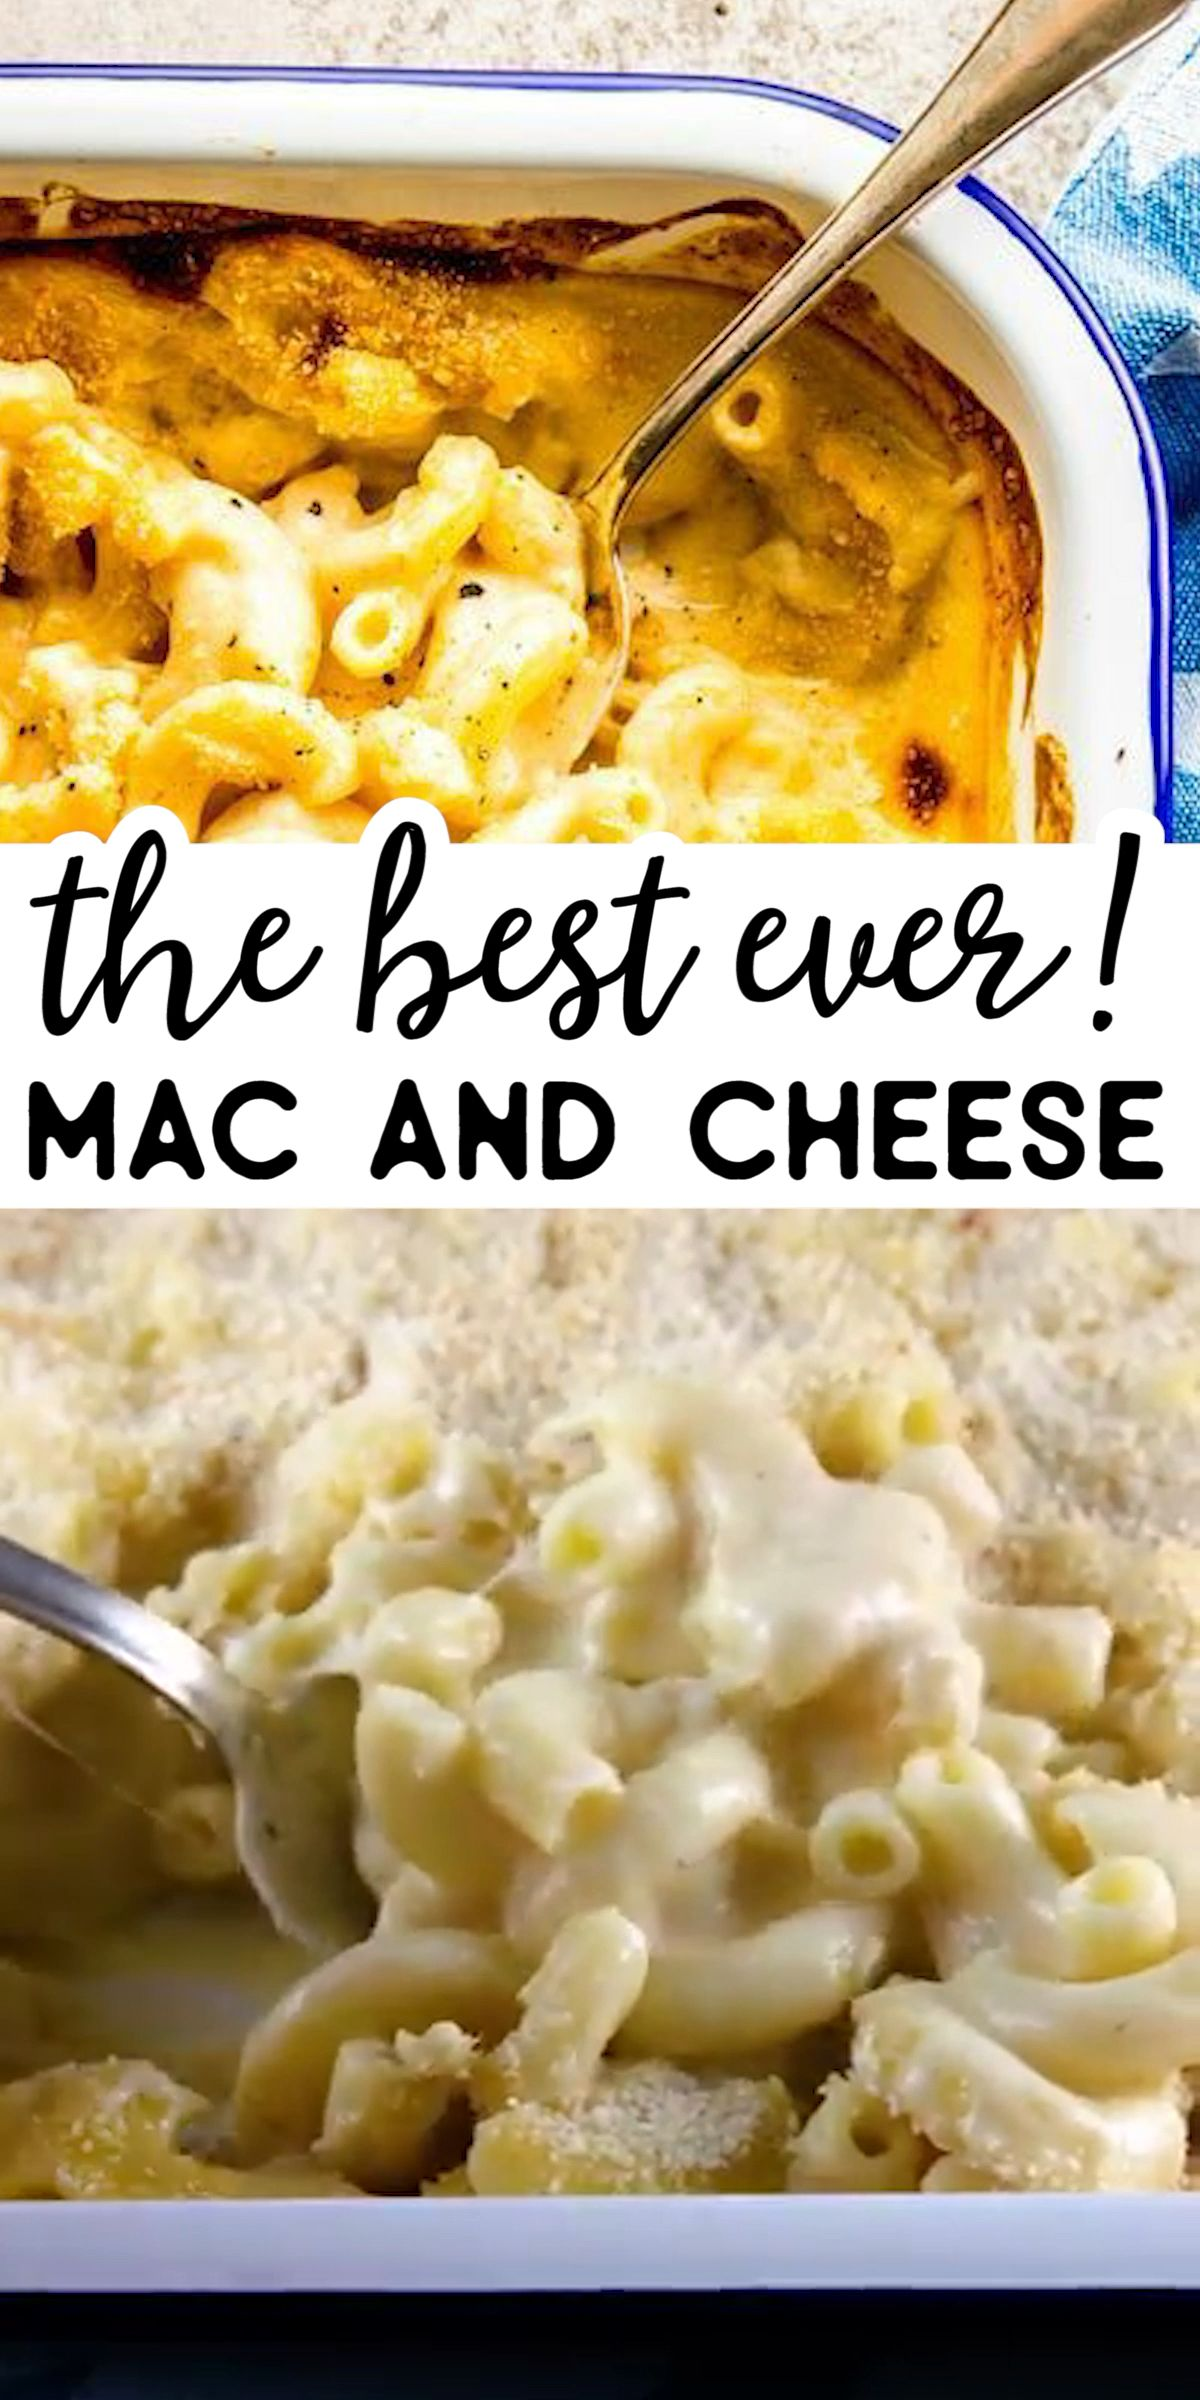 Homemade Baked Mac and Cheese #bakedmacandcheeserecipe